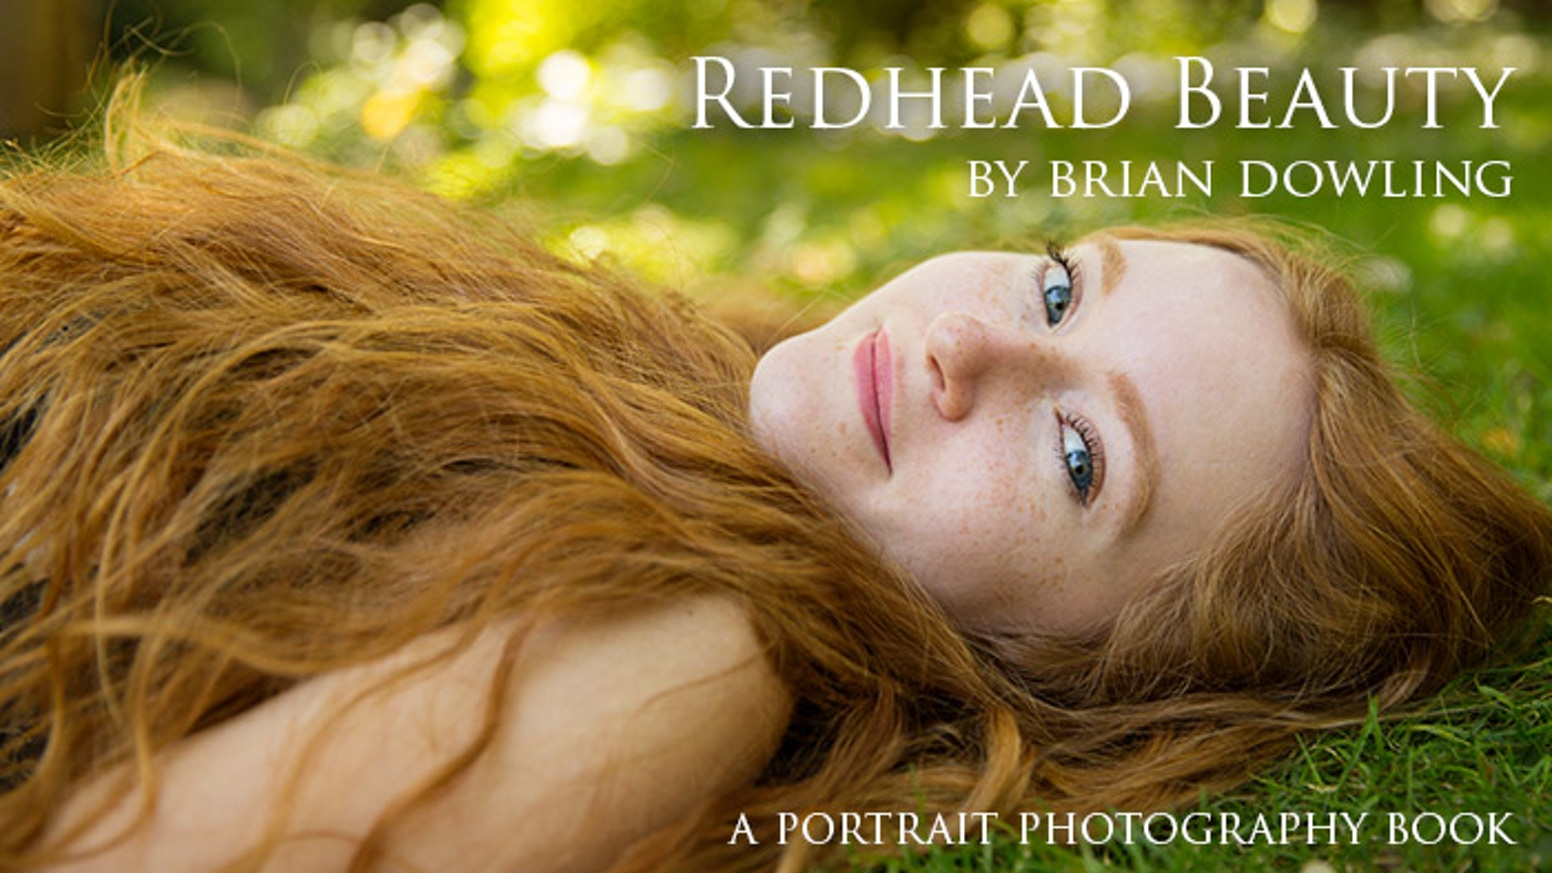 A large format art book containing portraits of Beautiful Redheads from 20 countries photographed by Brian Dowling.